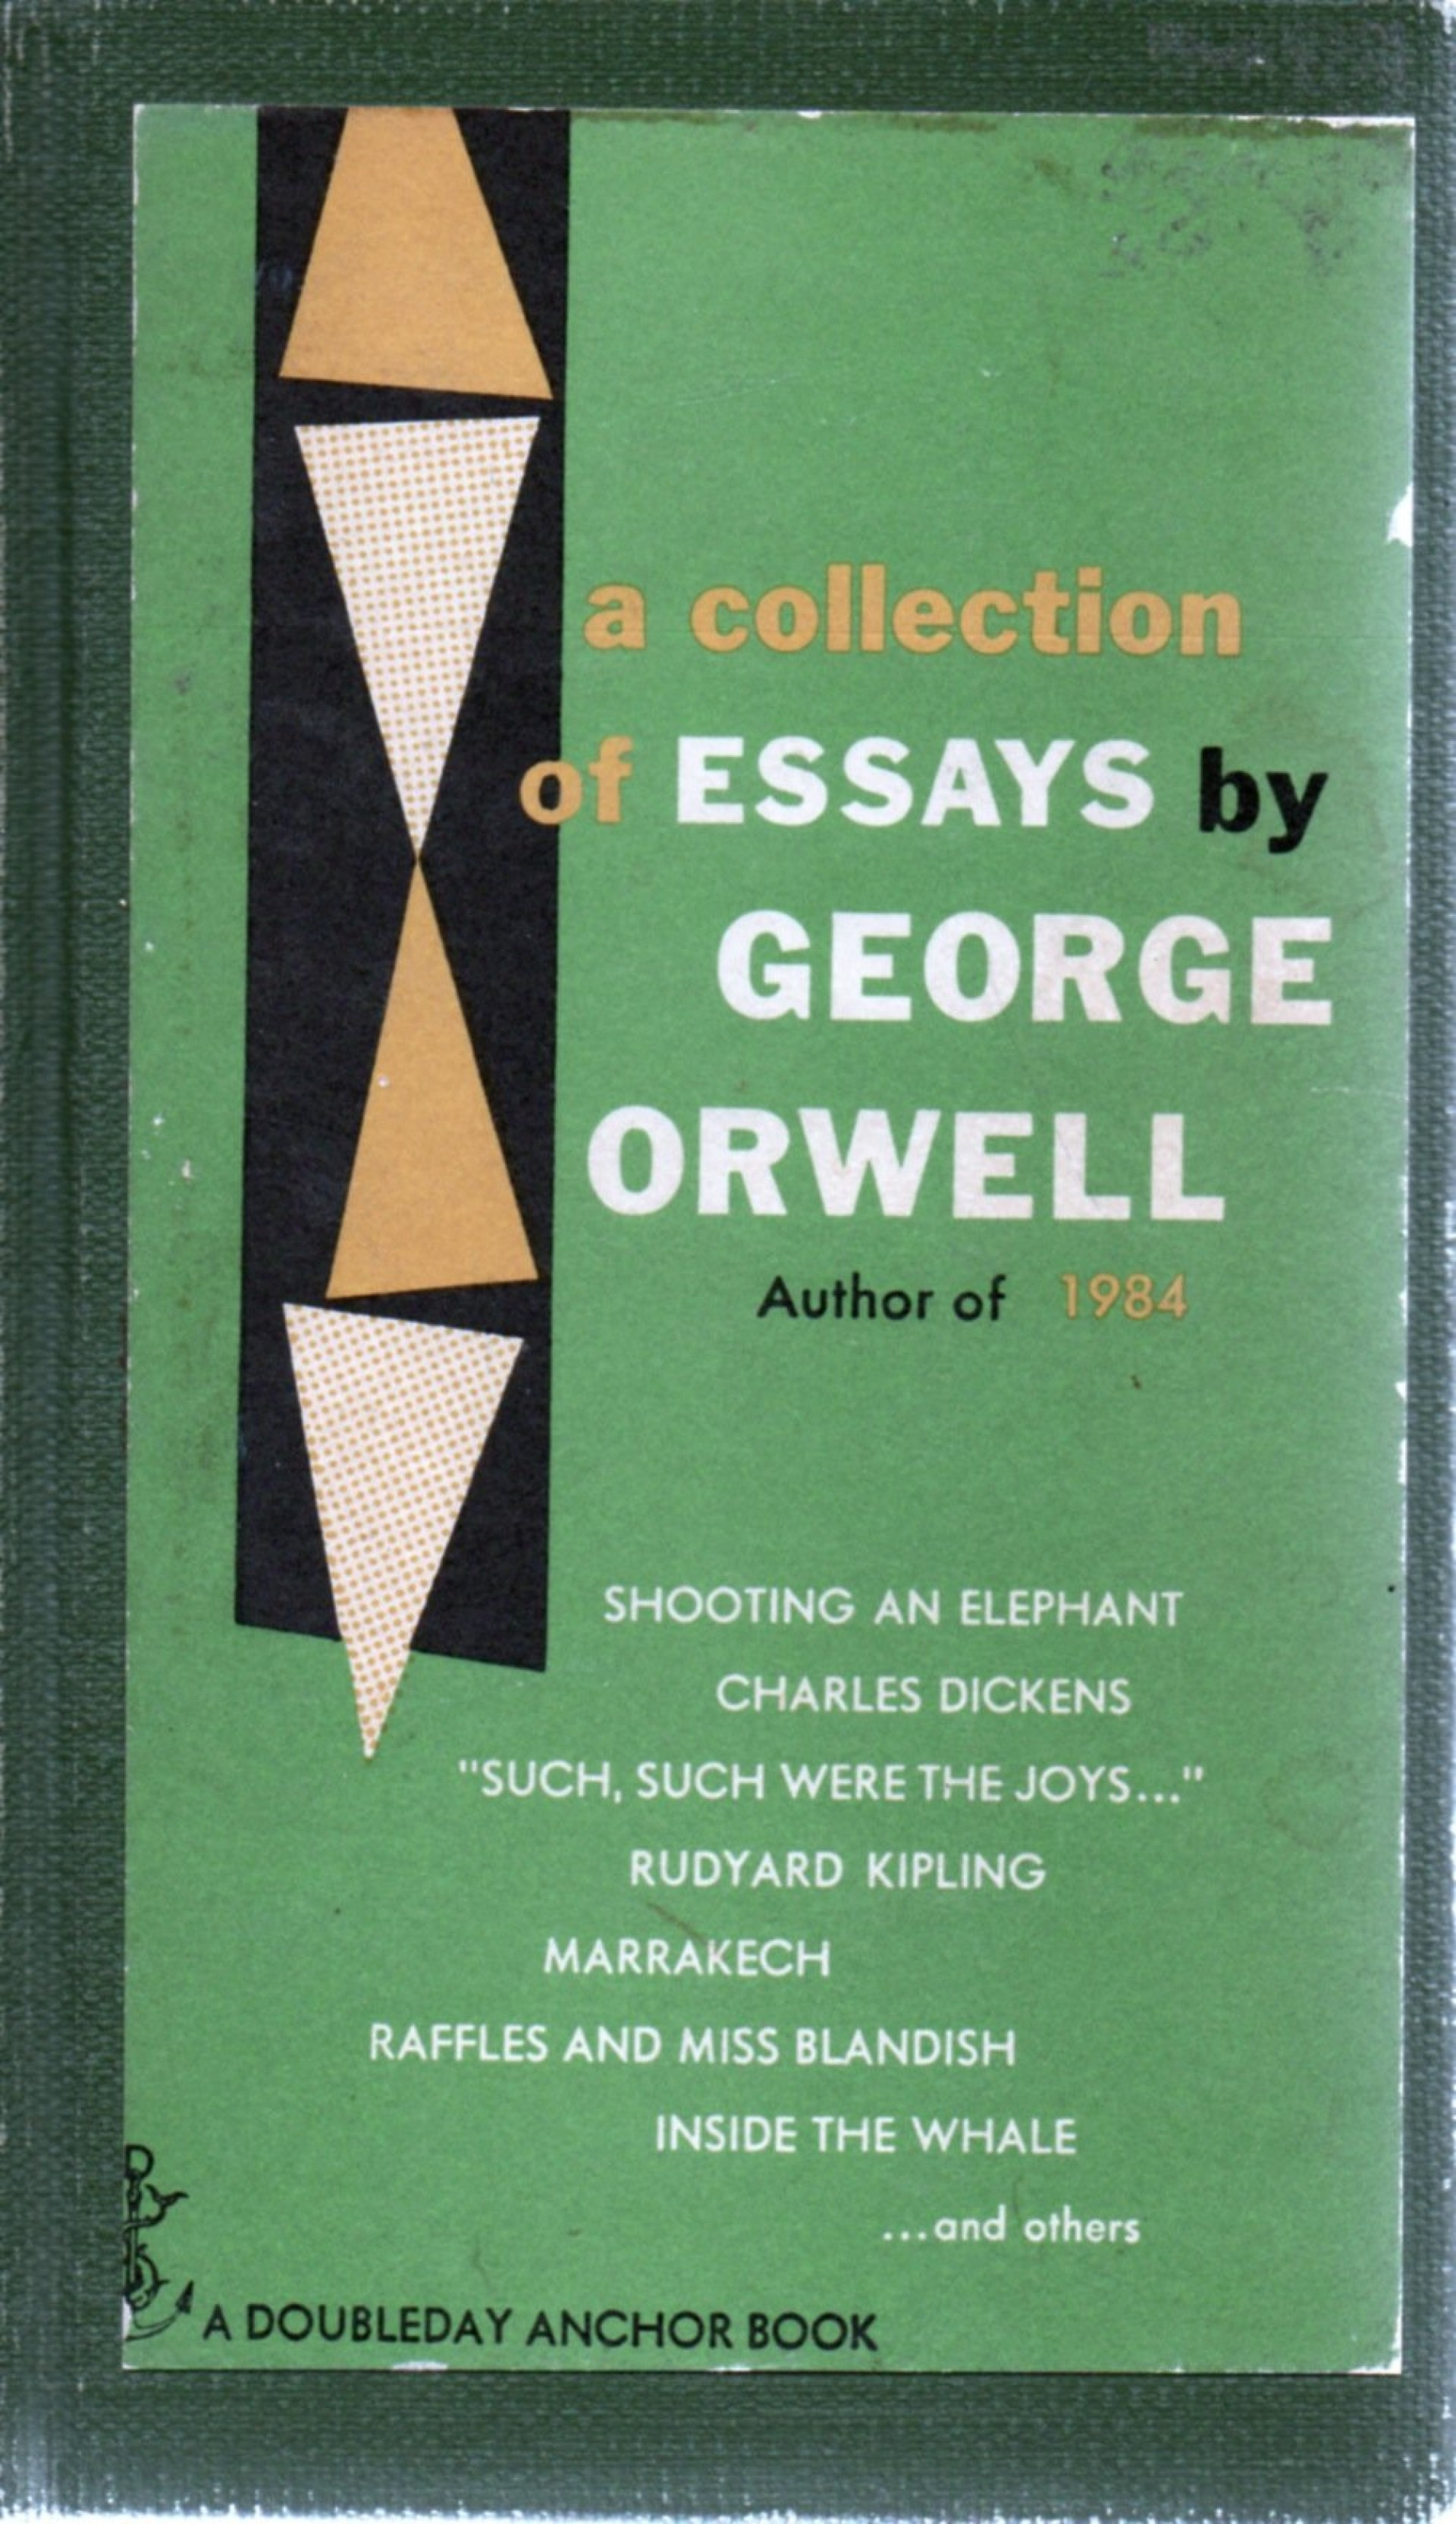 001 Essay Example Orwell Essays Singular Amazon Pdf Epub 1920